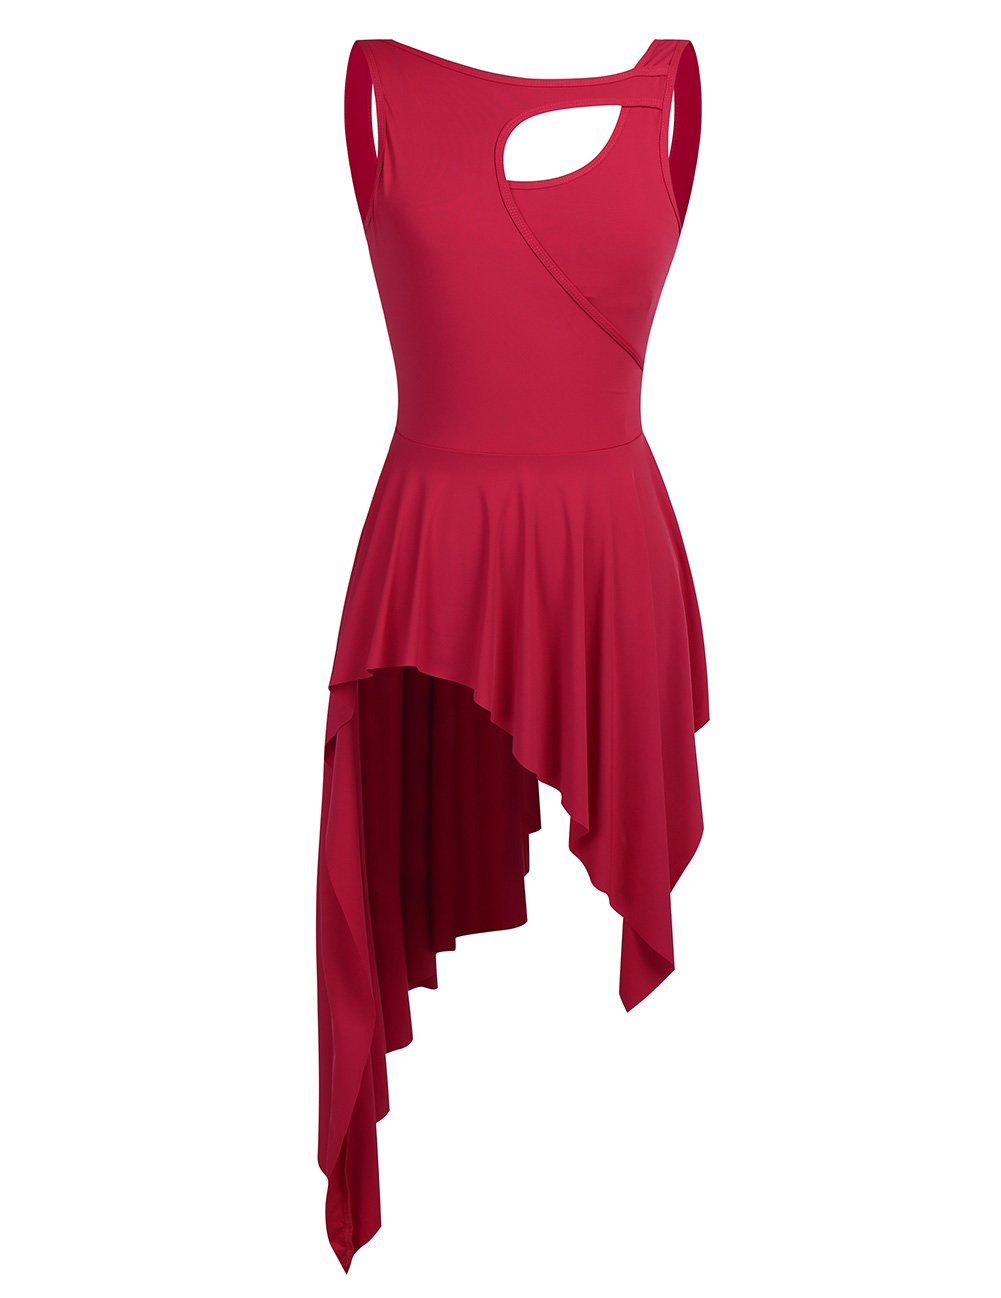 MSemis Women Lyrical Dance Costume Dresses High Low Skirt Camisole Leotard Red Small by MSemis